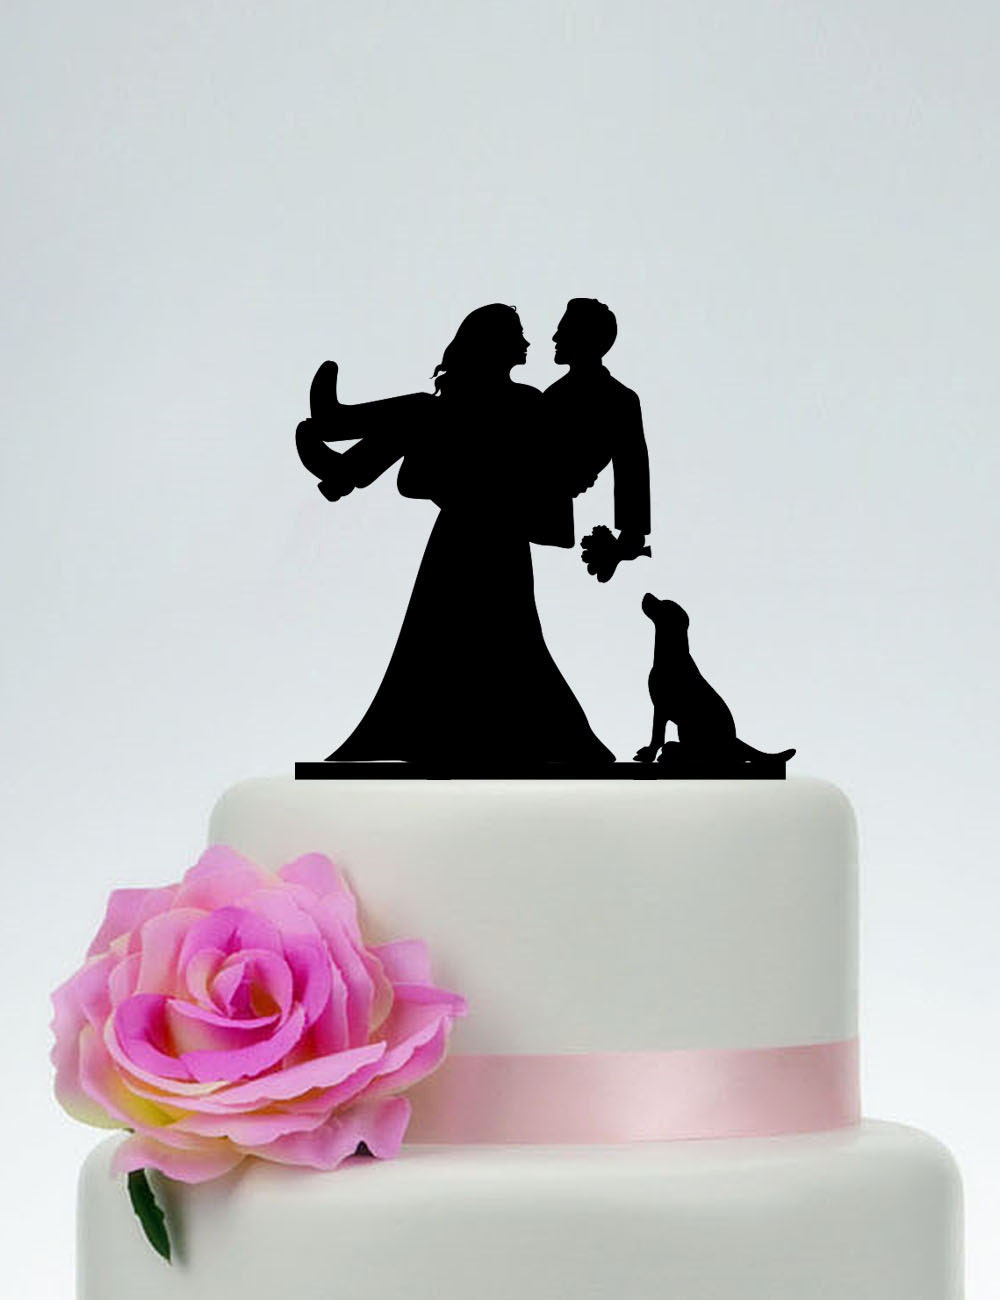 Design Your Own Bride And Groom Cake Toppers : Bride And Groom Cake Topper With A DogWedding Cake